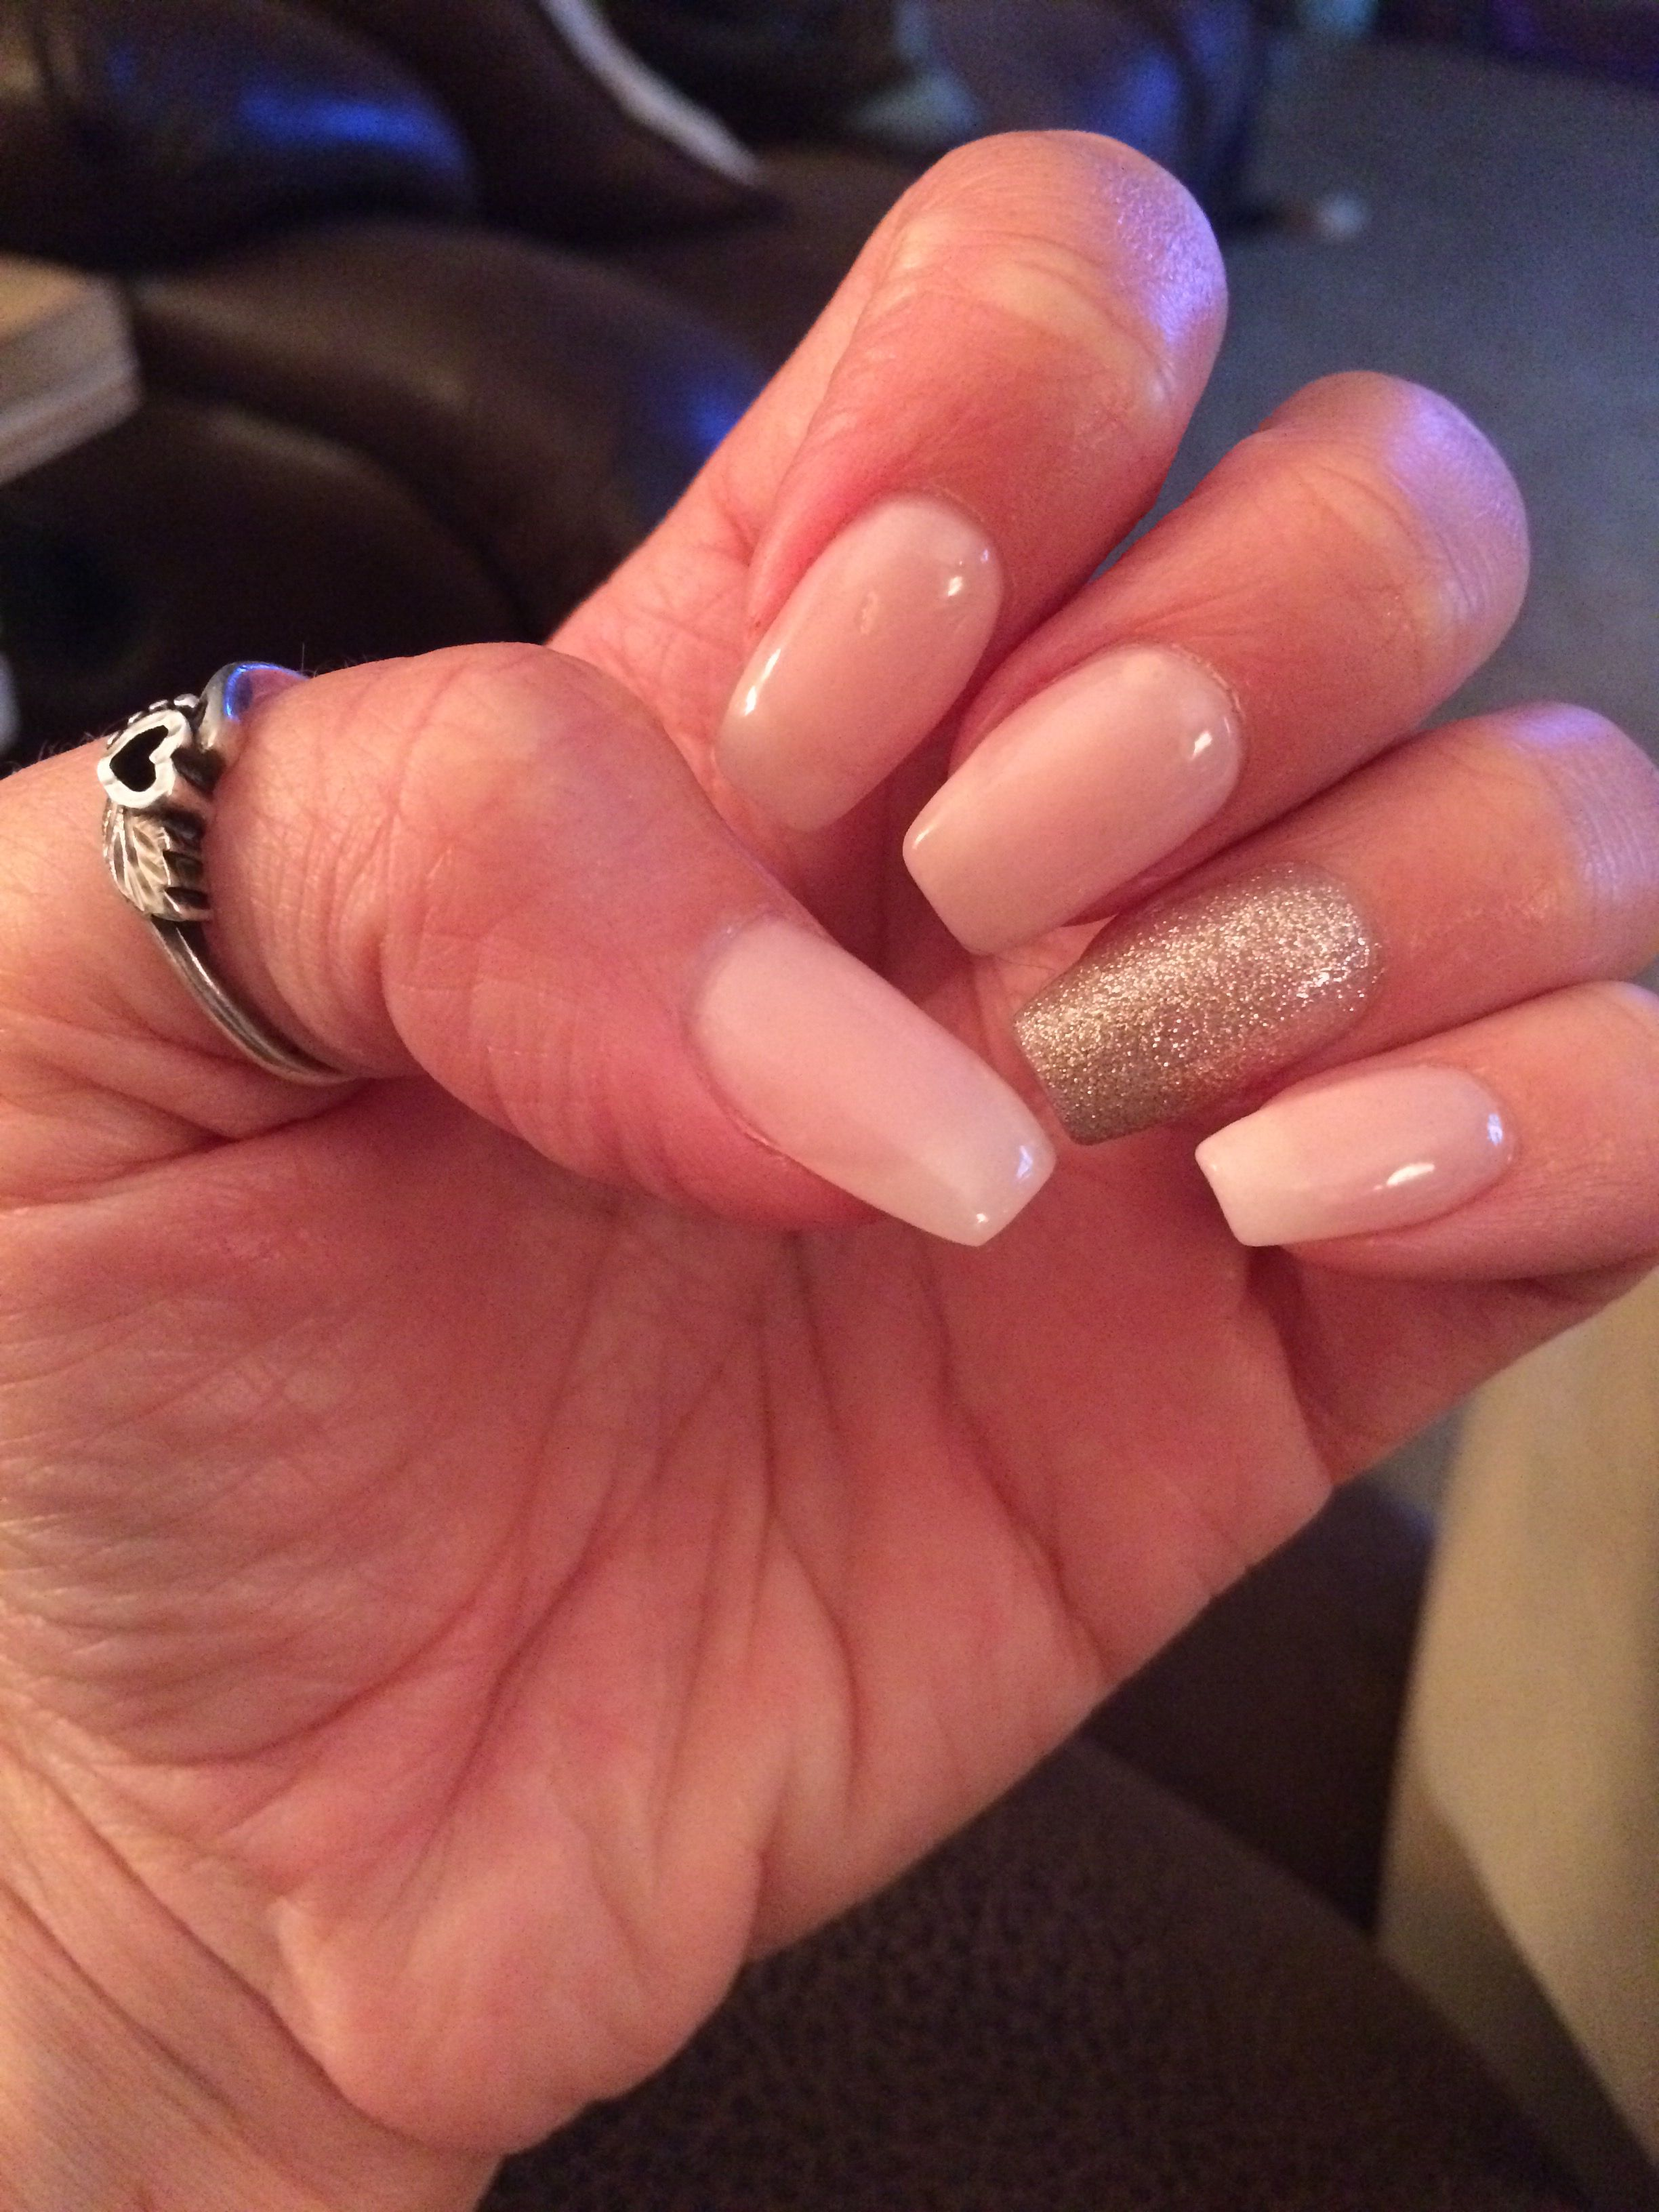 Opi Bubble Bath Coffin Nails With Gold Glitter Accent Gold Acrylic Nails Gold Nails Rose Gold Nails